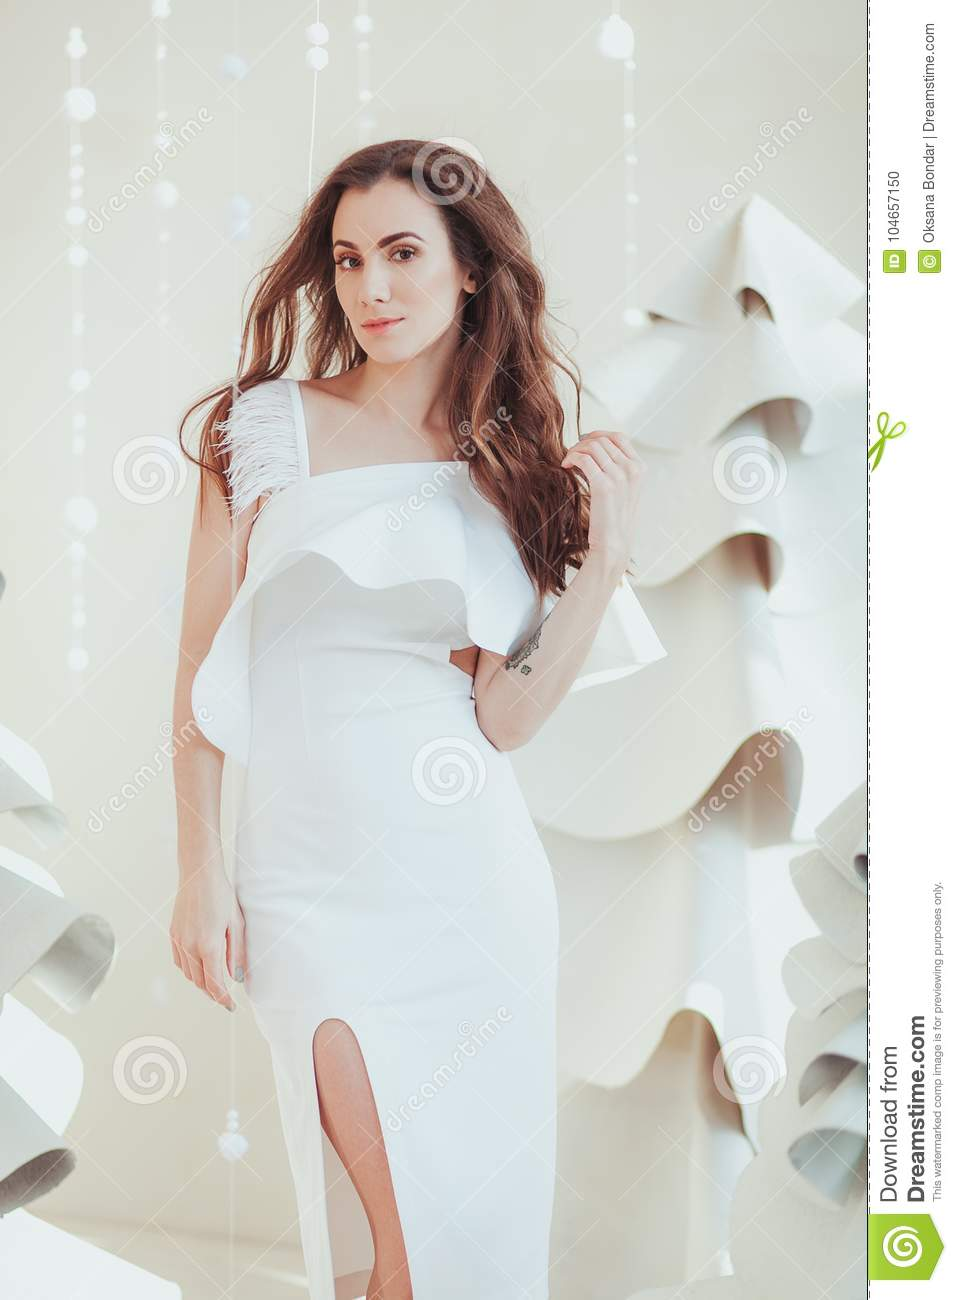 Beautifull young woman in white dress posing in fishion design studio room. Fabric christmas tree on background